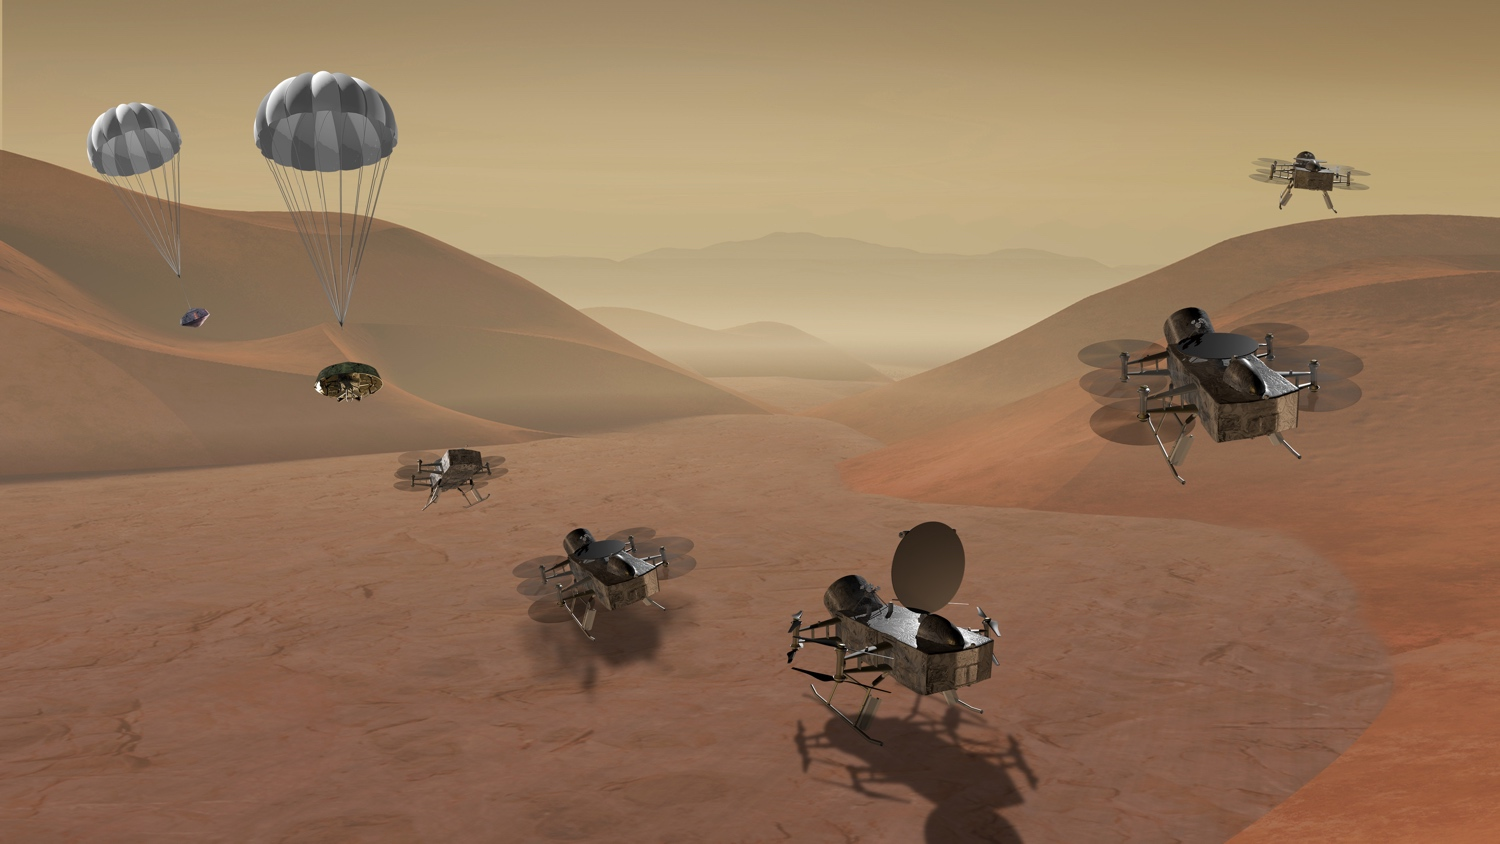 An artist's impression of the Dragonfly mission on Titan.